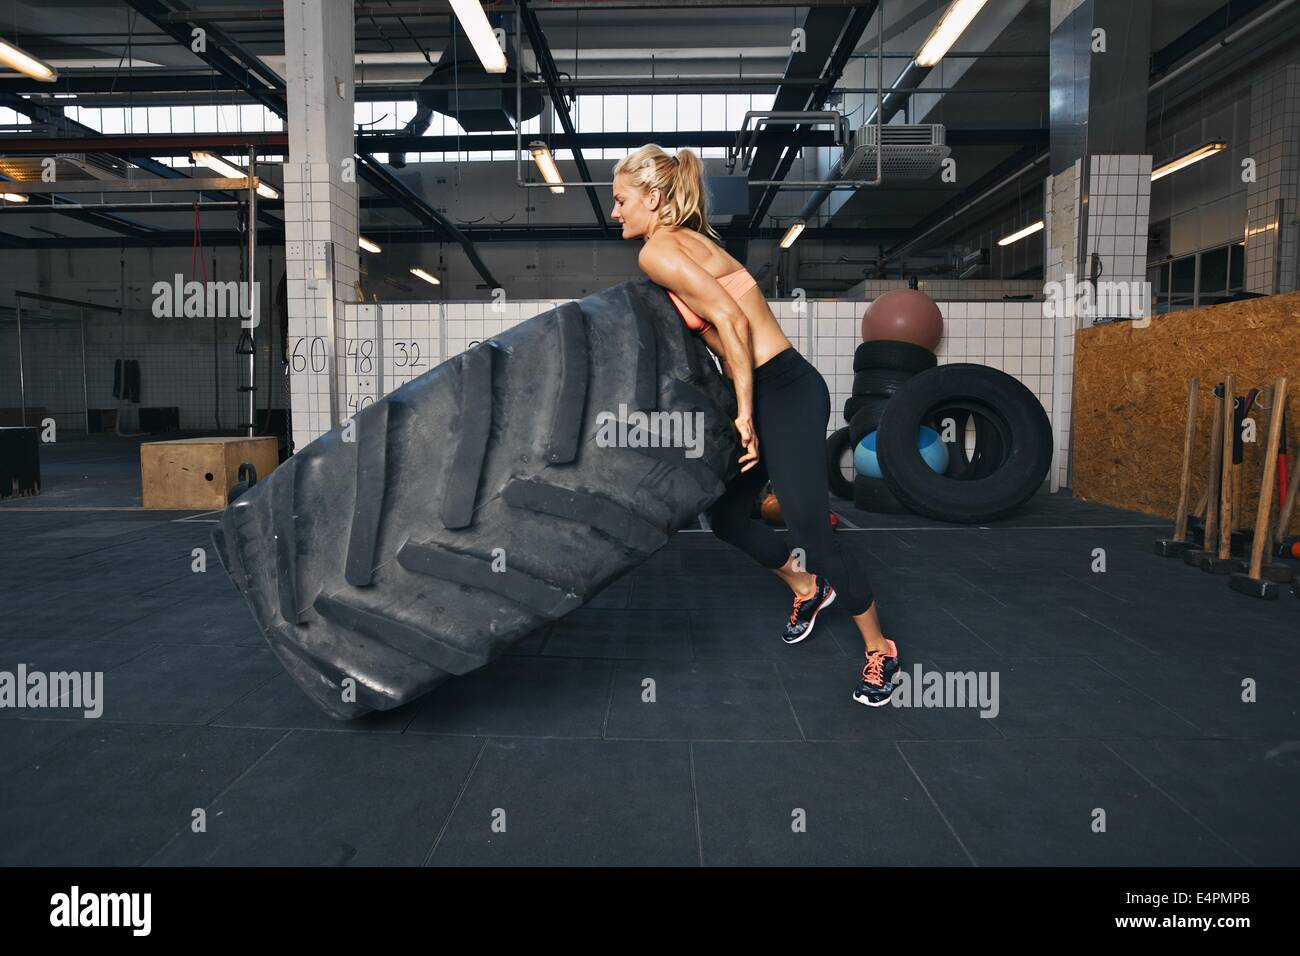 Fit female athlete flipping a huge tire. Muscular young woman doing crossfit exercise at gym. - Stock Image